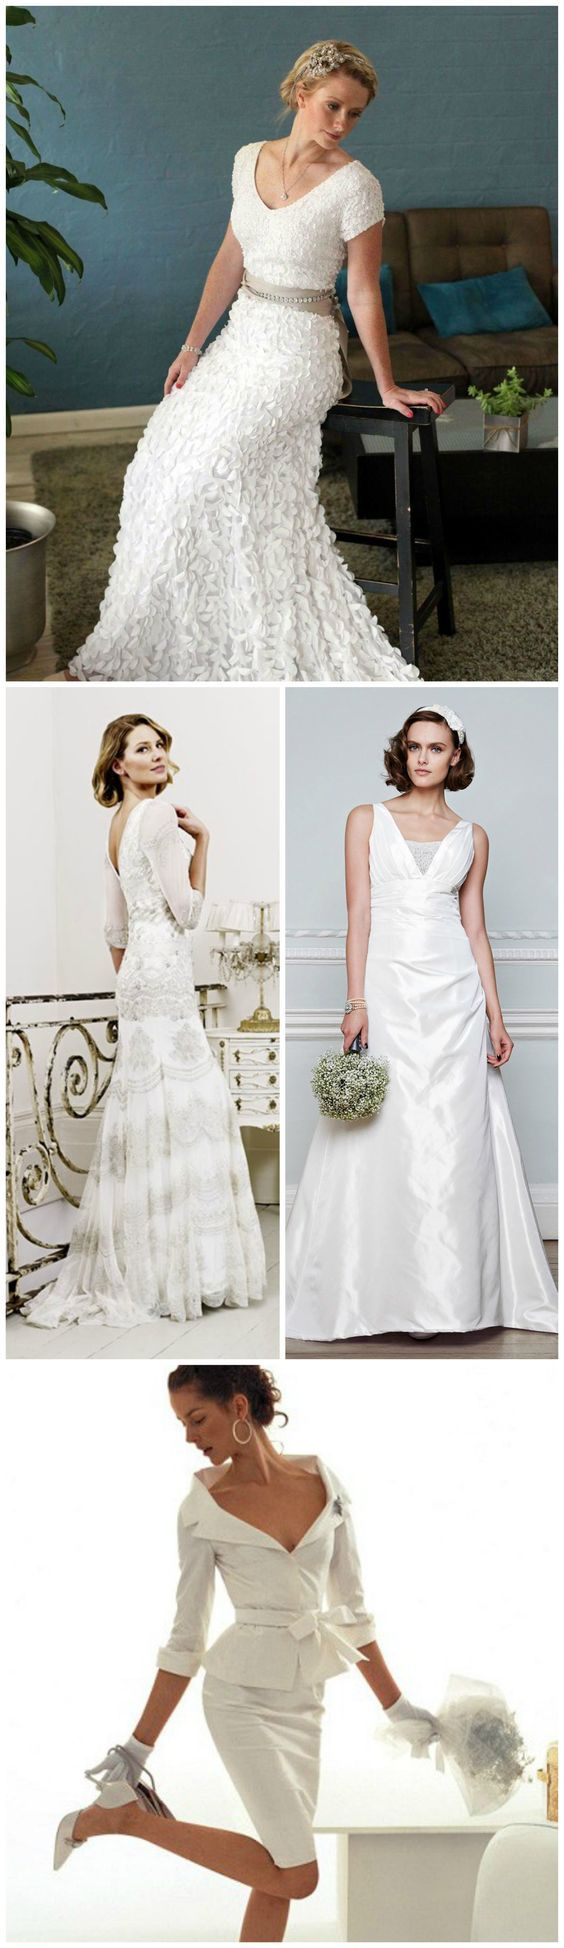 Wedding dress for older bride  Wedding Dresses for Older Brides over      wedding dress